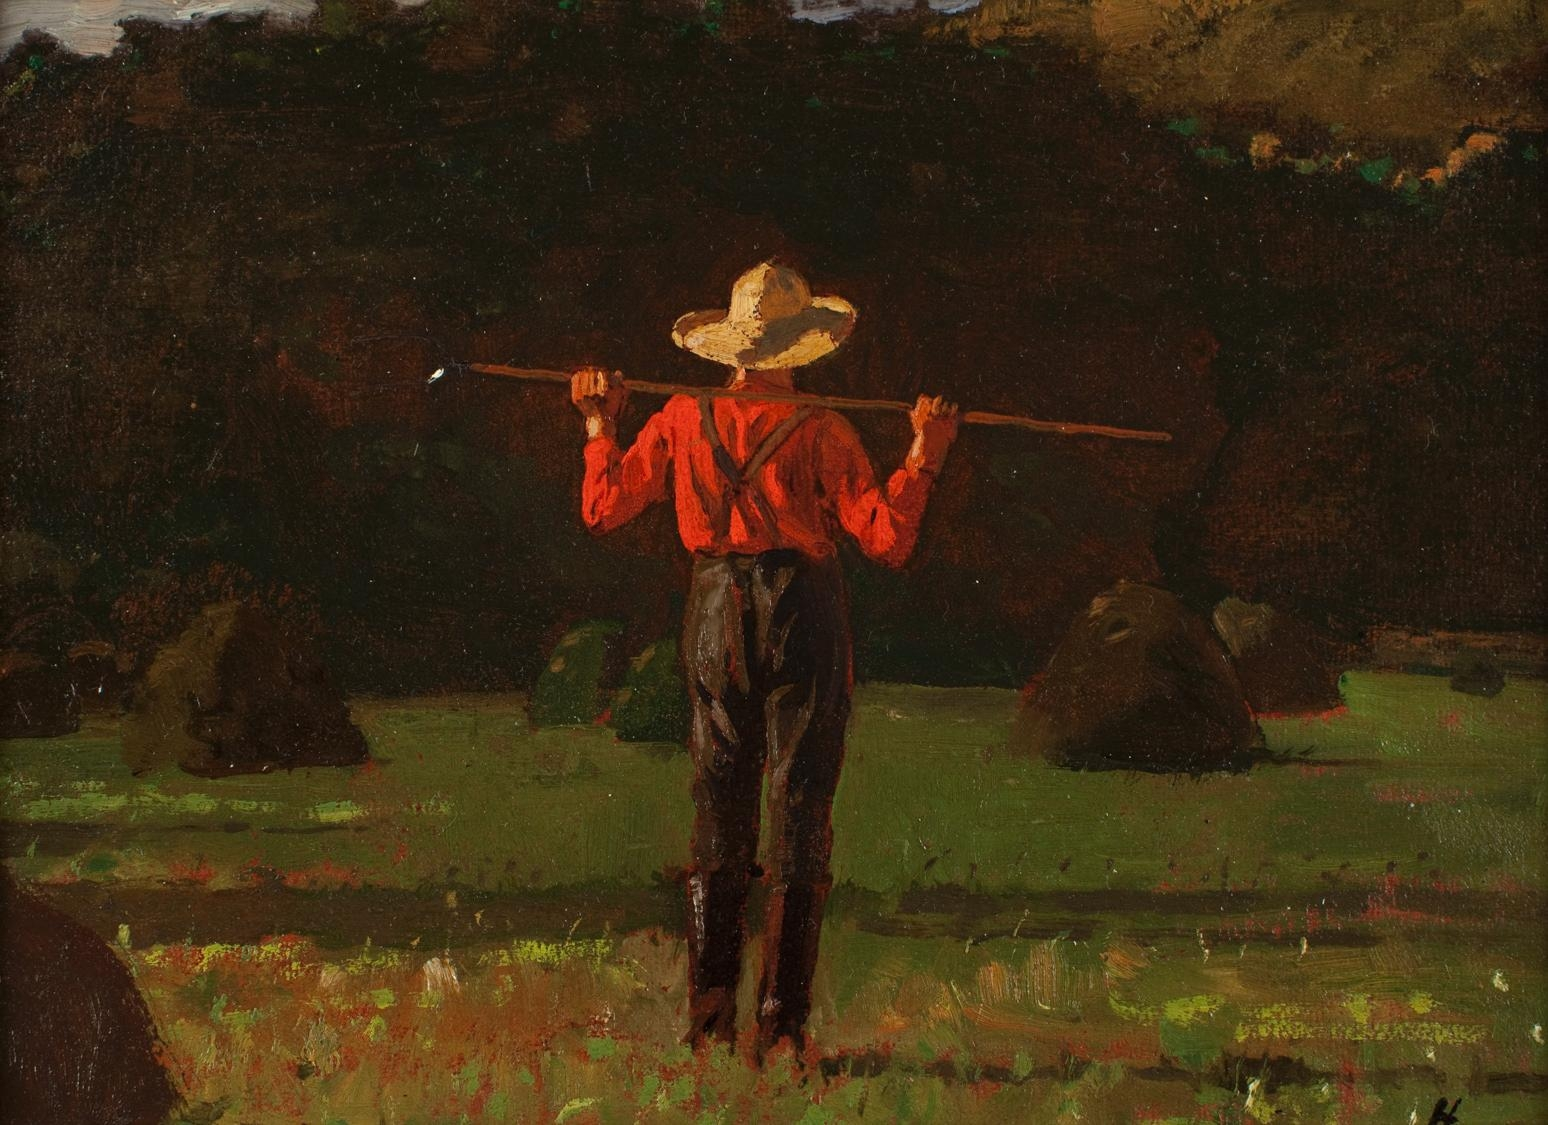 Farmer with a pitchfork, by Winslow Homer, 1874